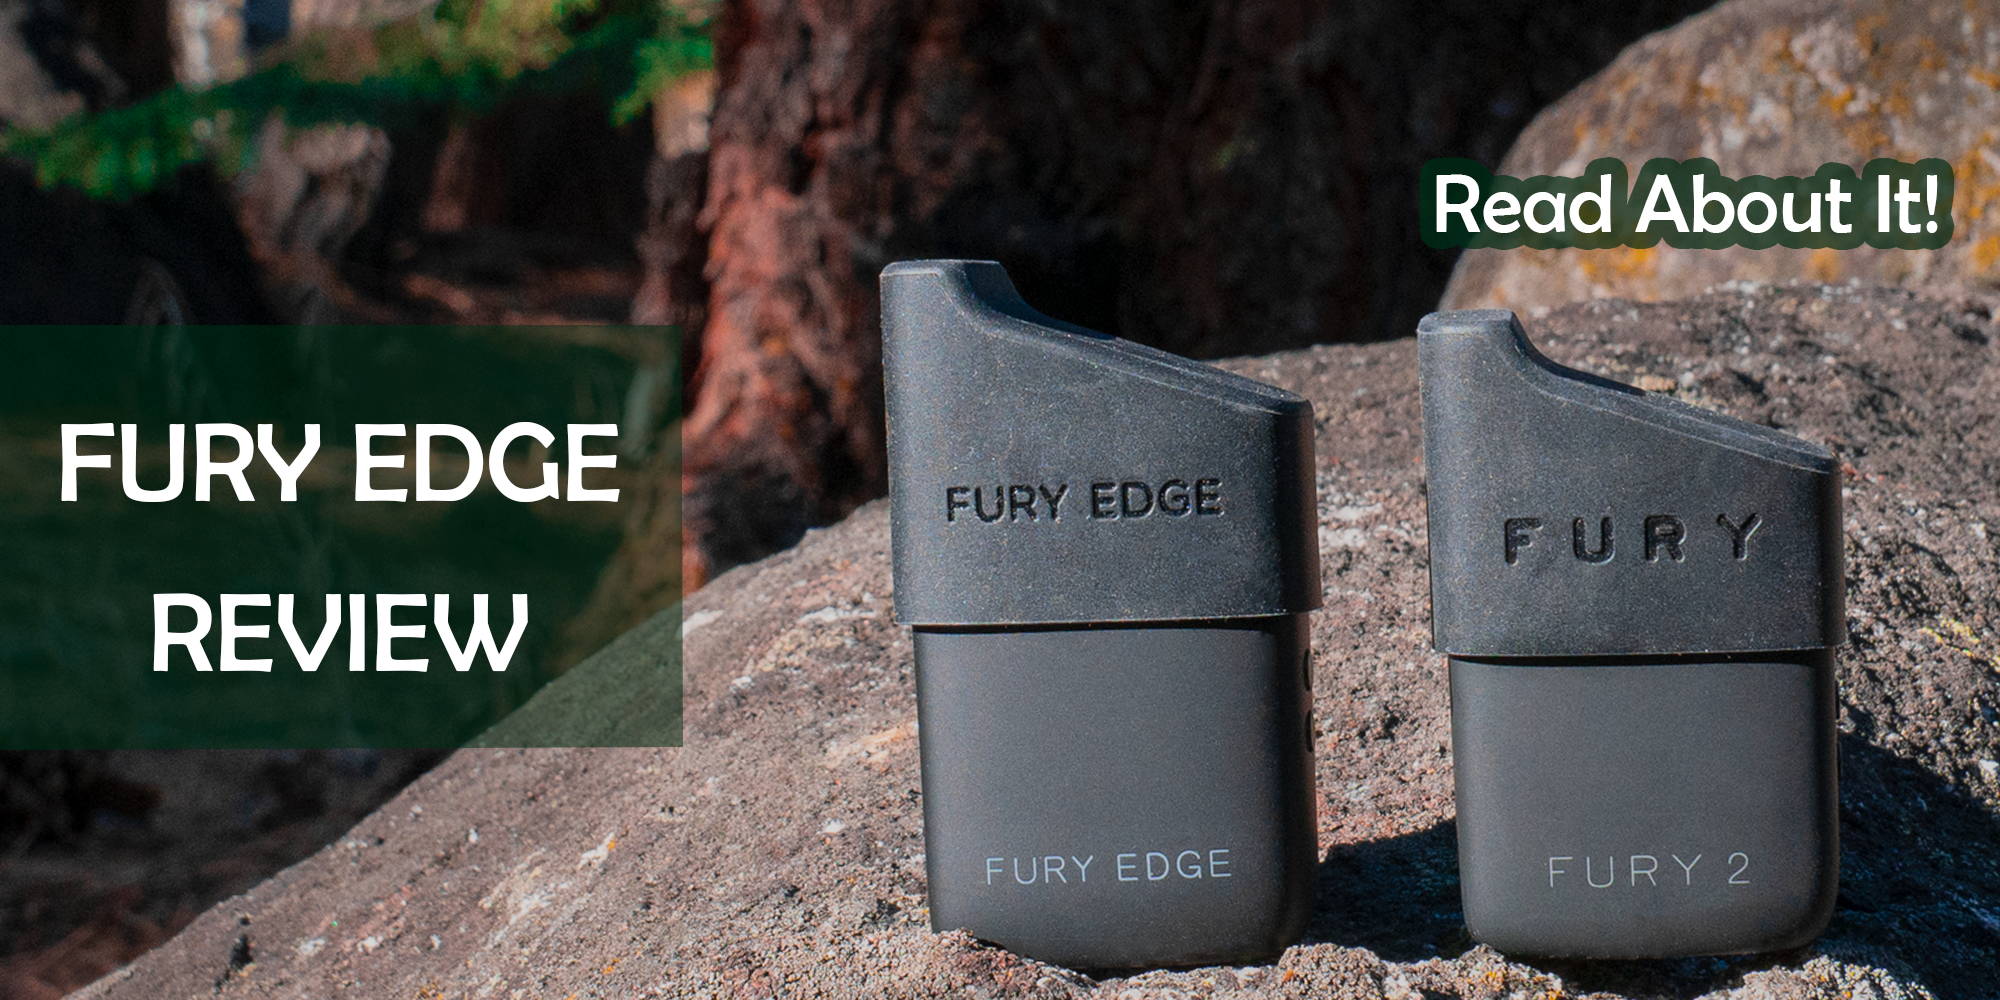 Fury EDGE ultimate review and user guide